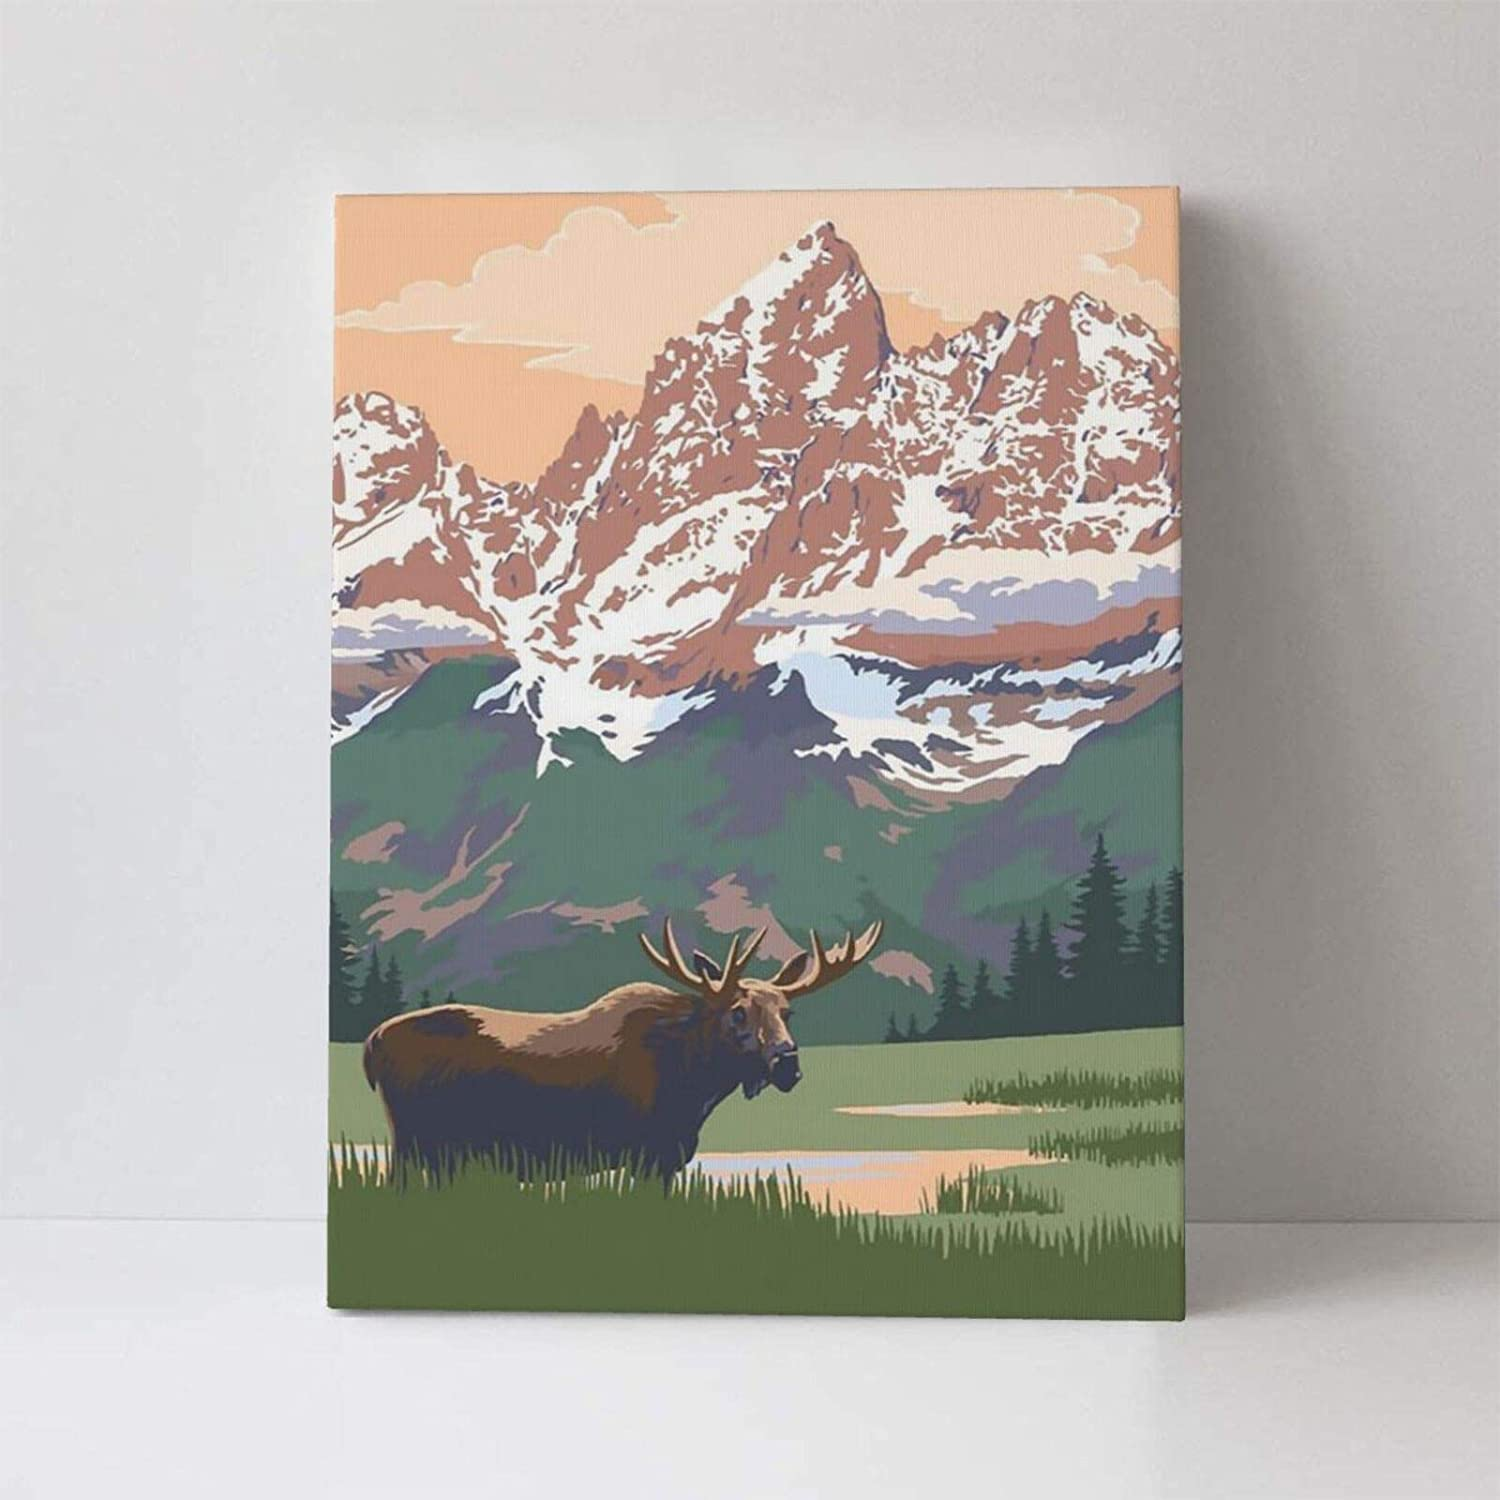 TMVFPYR Grand Teton National Park - Moose and Mountains Canvas Prints Wall Art Picture Decor Artwork Paintings for Living Room Bedroom Home Decorations Modern Framed Ready to Hang